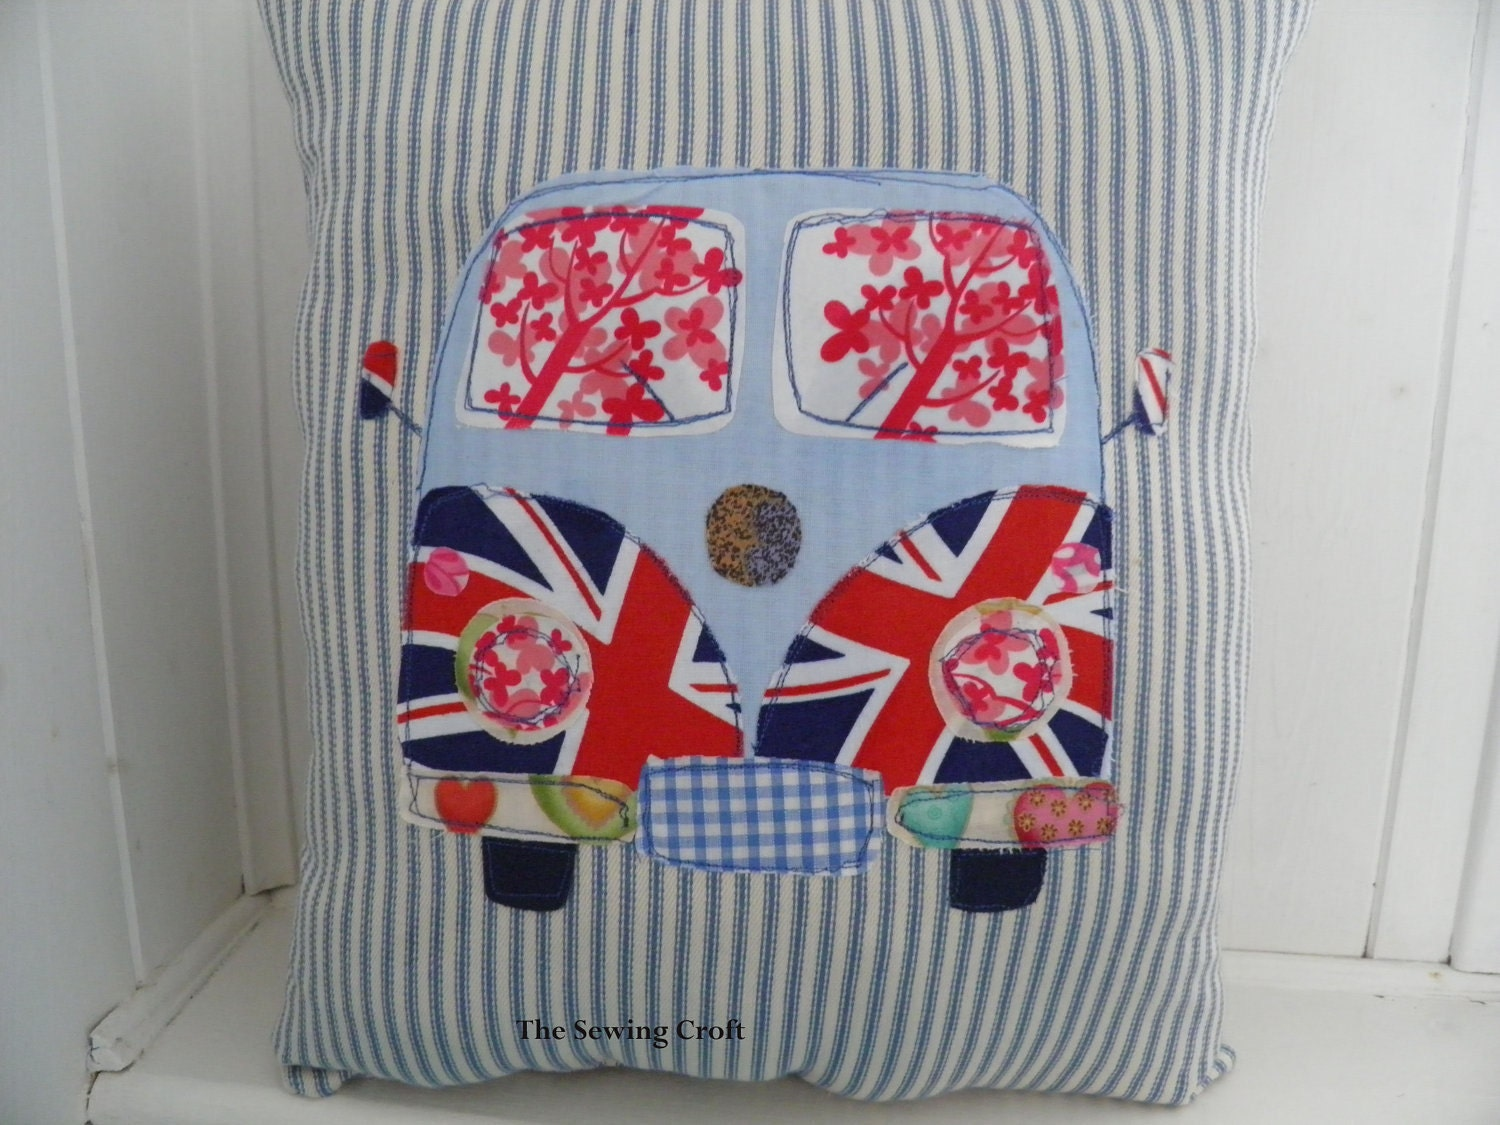 VW Campervan Union Jack British Sketch Applique pillow cushion